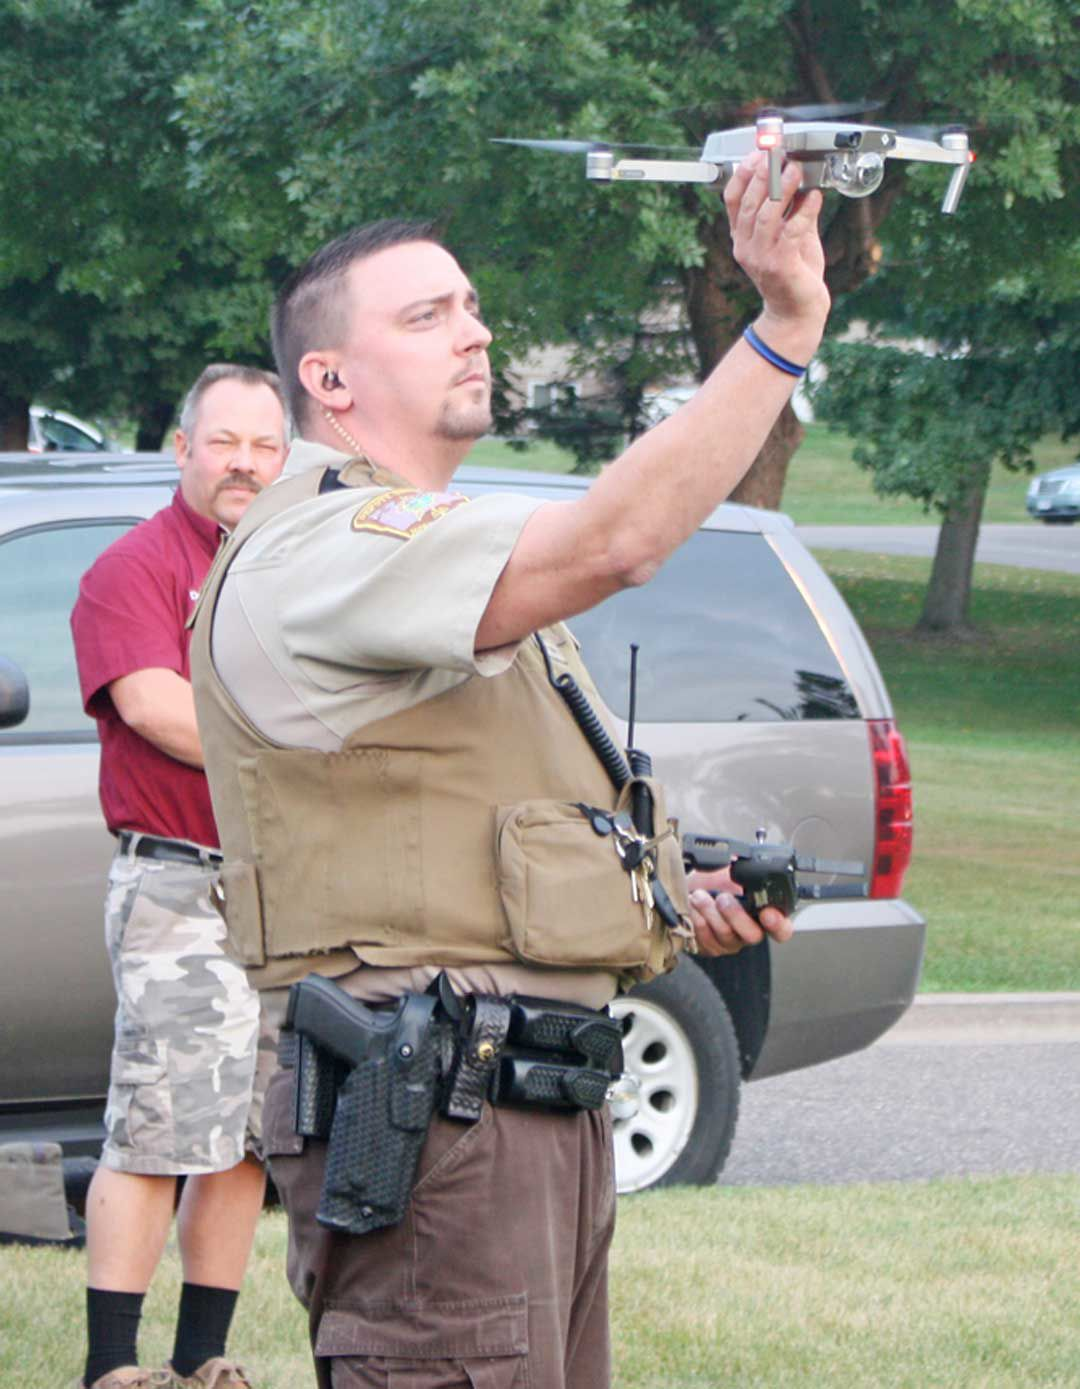 Drone equipment donated to MCSO in memory of Duane Johnson